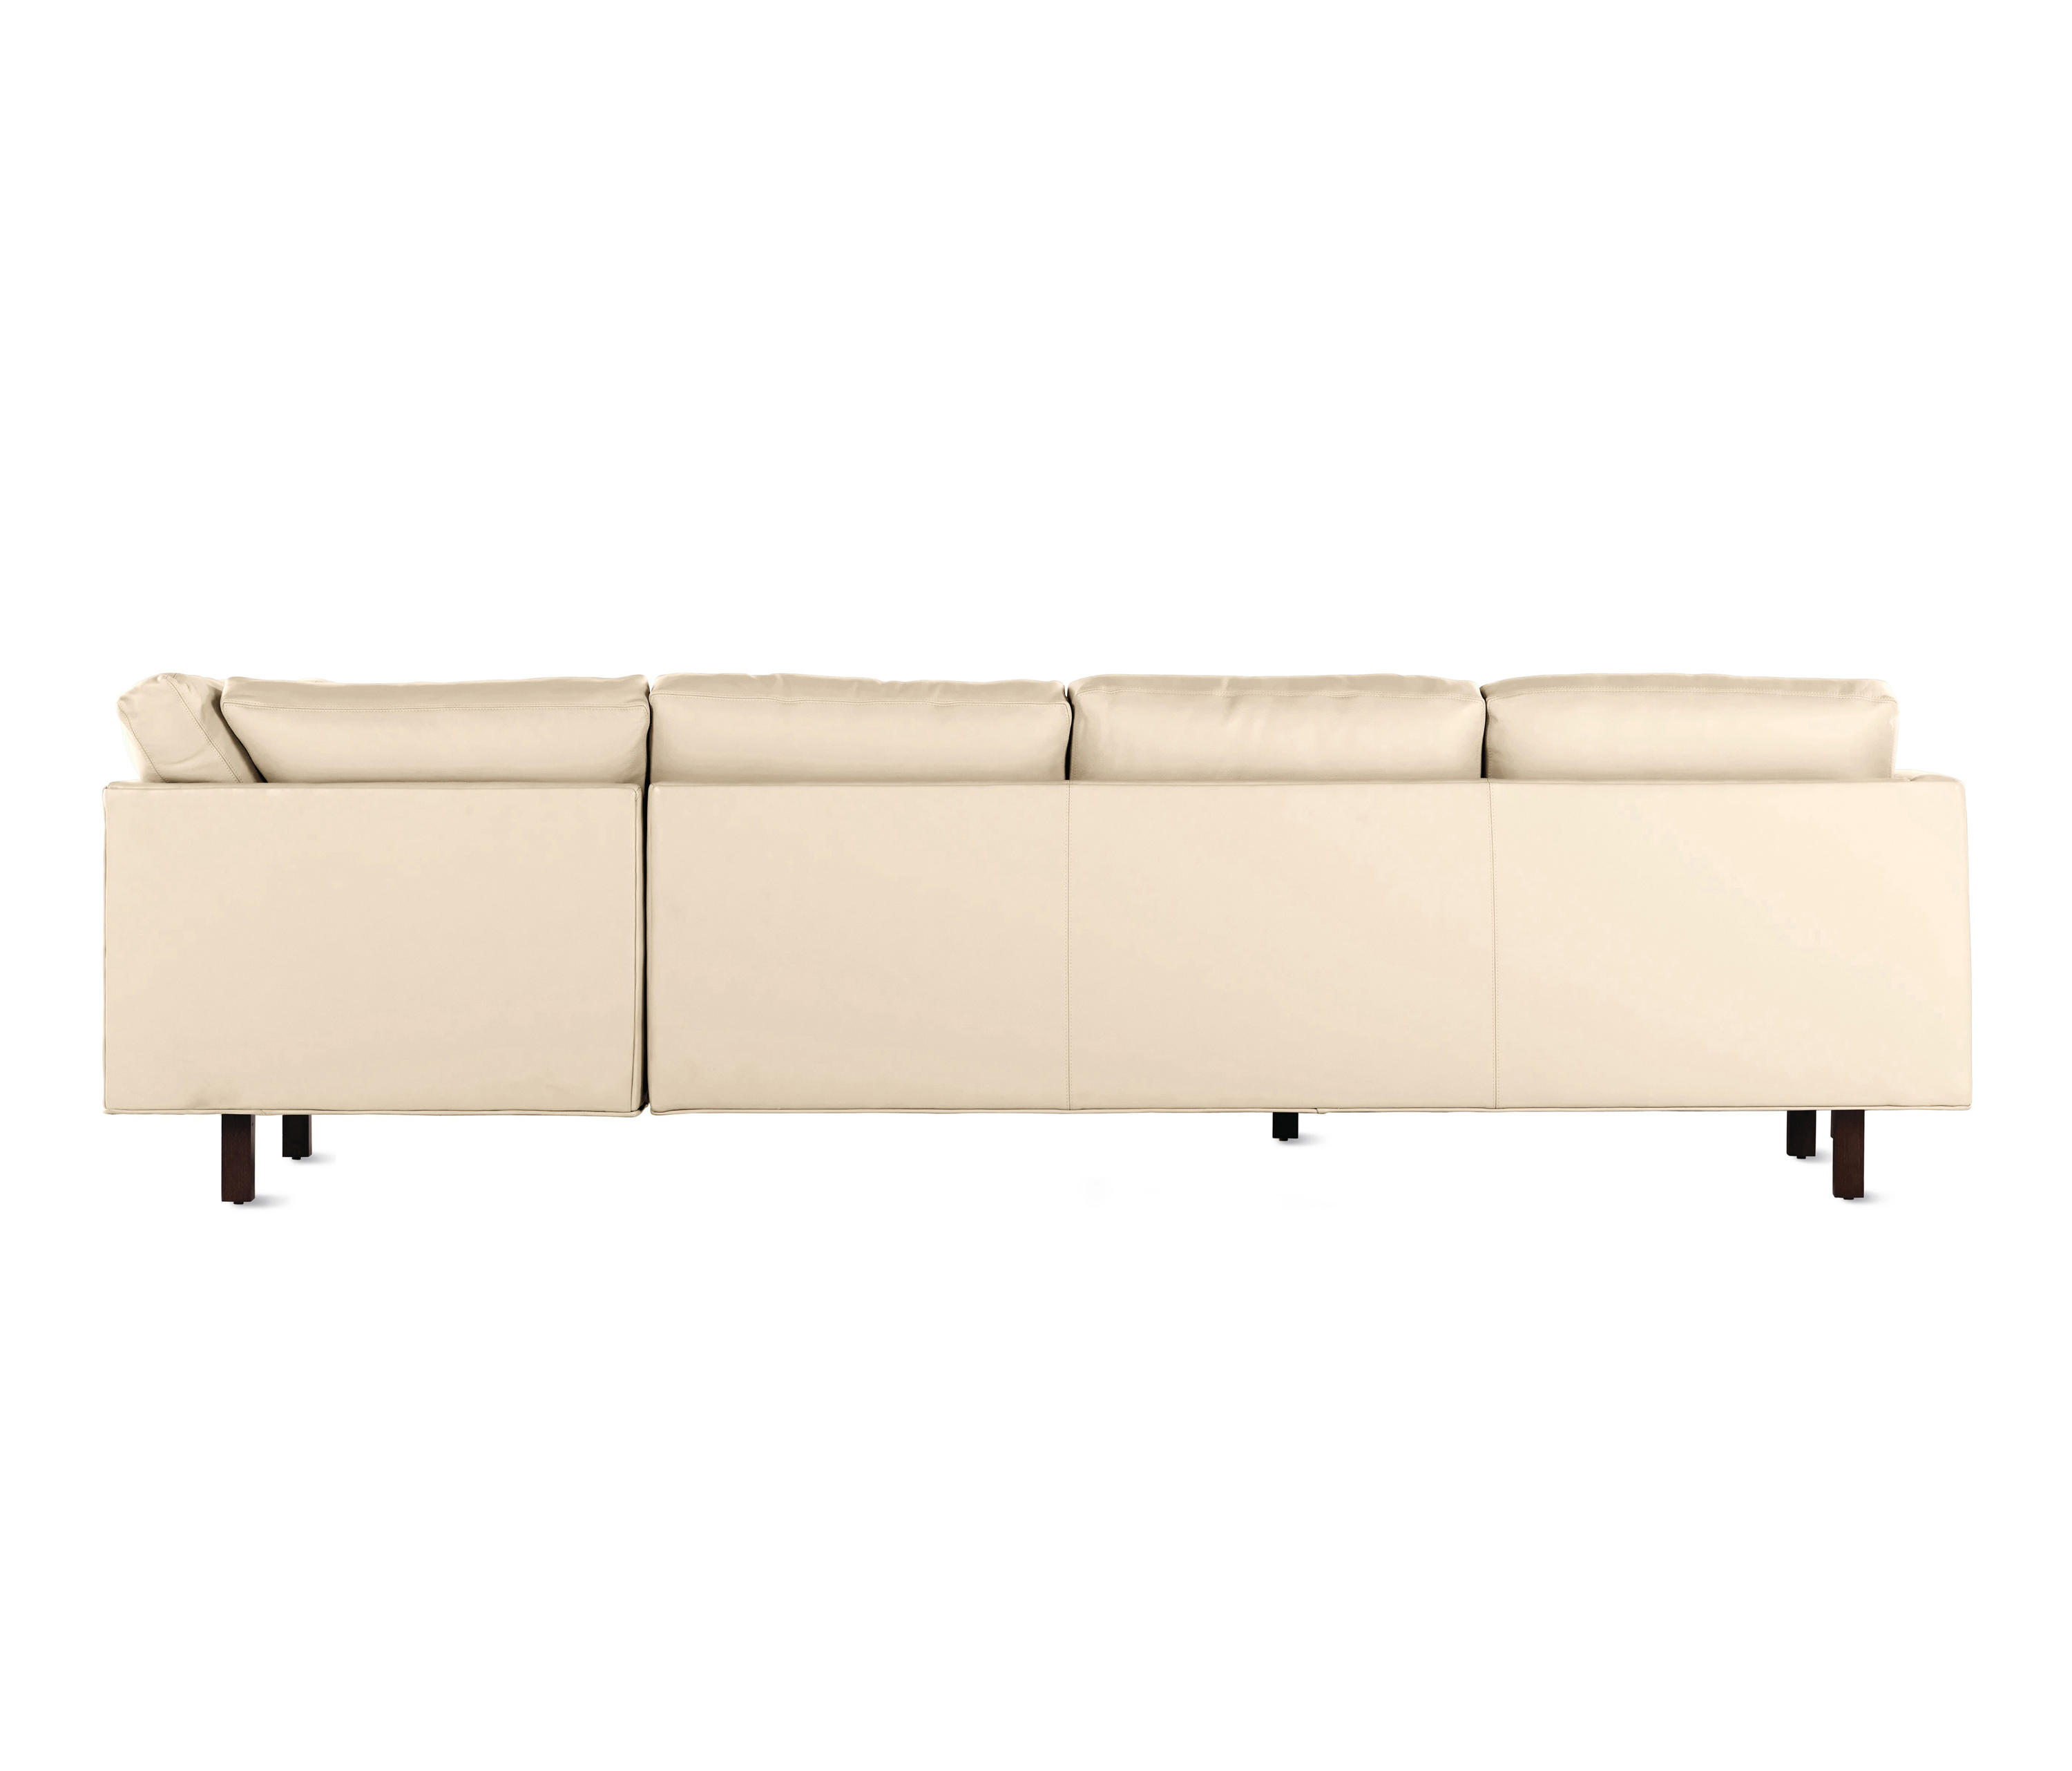 GOODLAND LARGE SECTIONAL IN LEATHER, LEFT, WALNUT LEGS